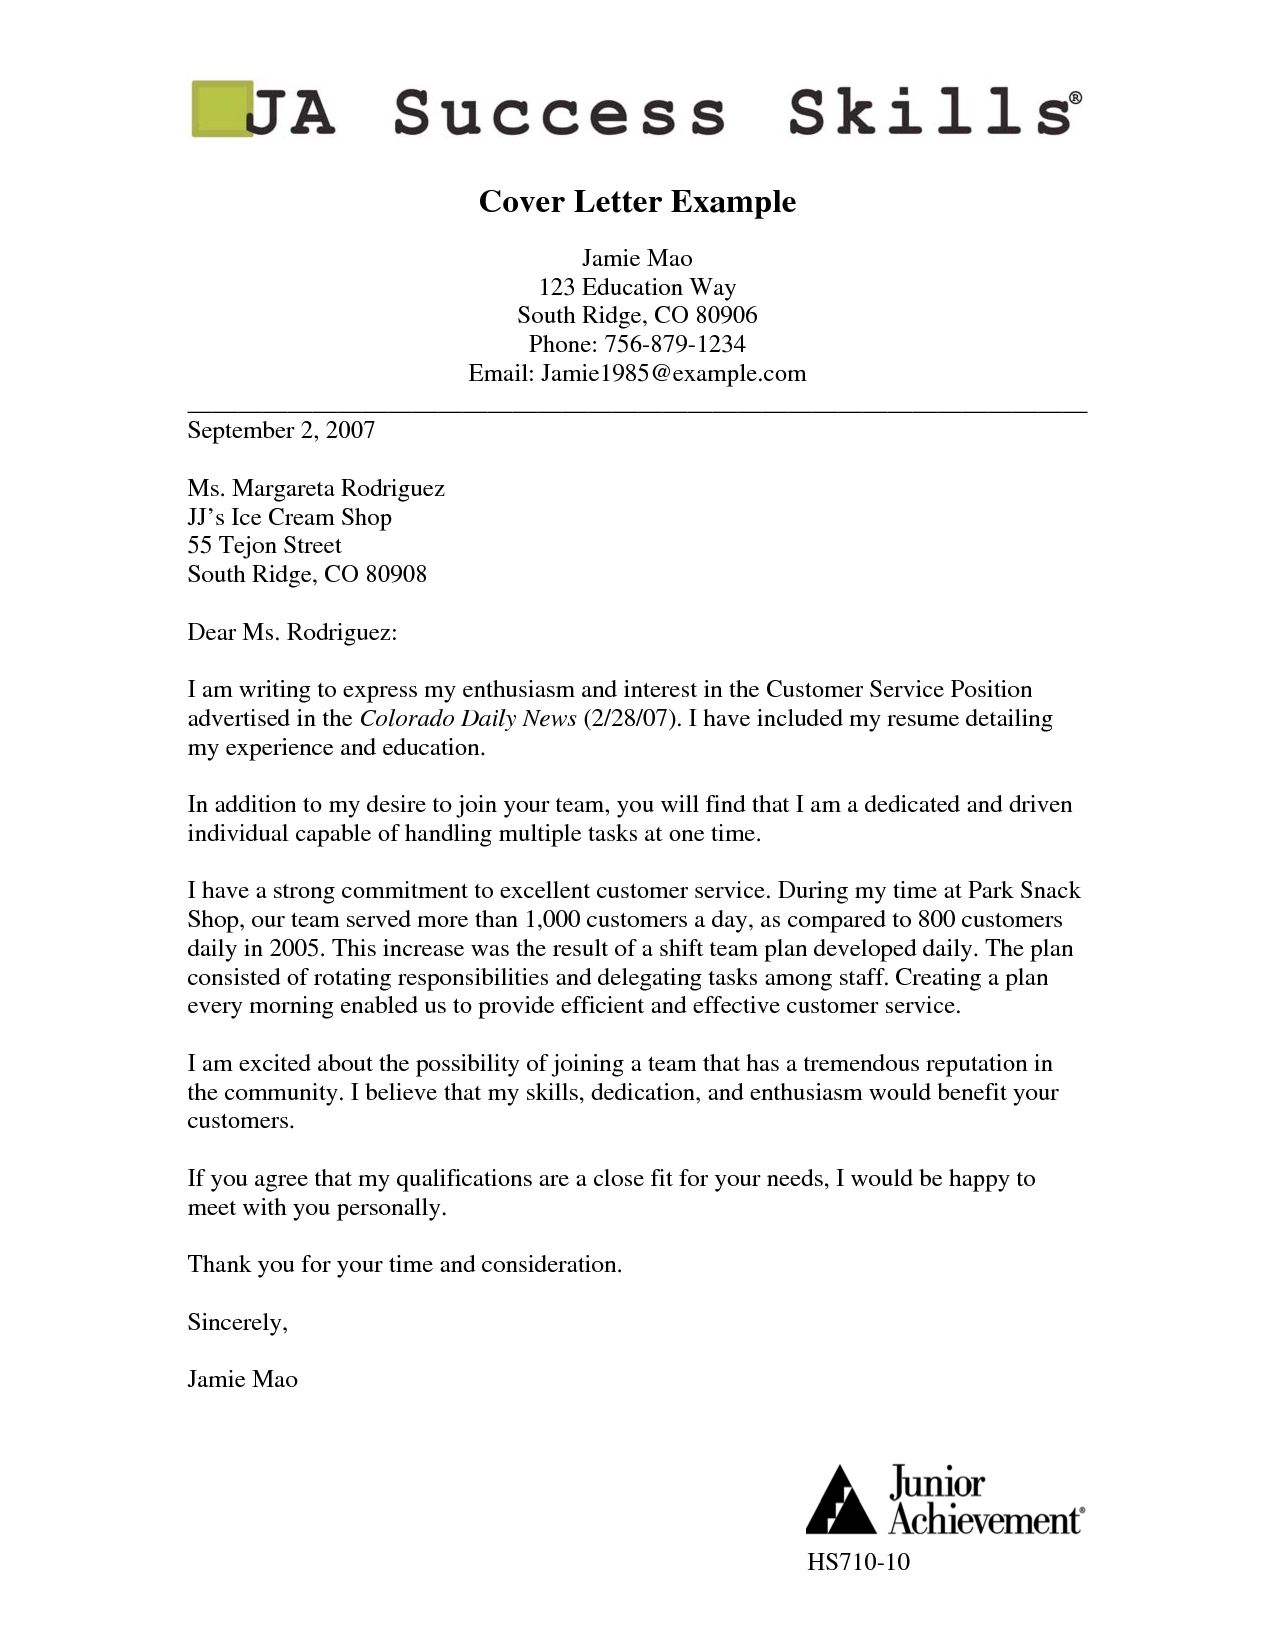 Cover Letter Layout Pdf - The Ultimate Guide to CV Templates